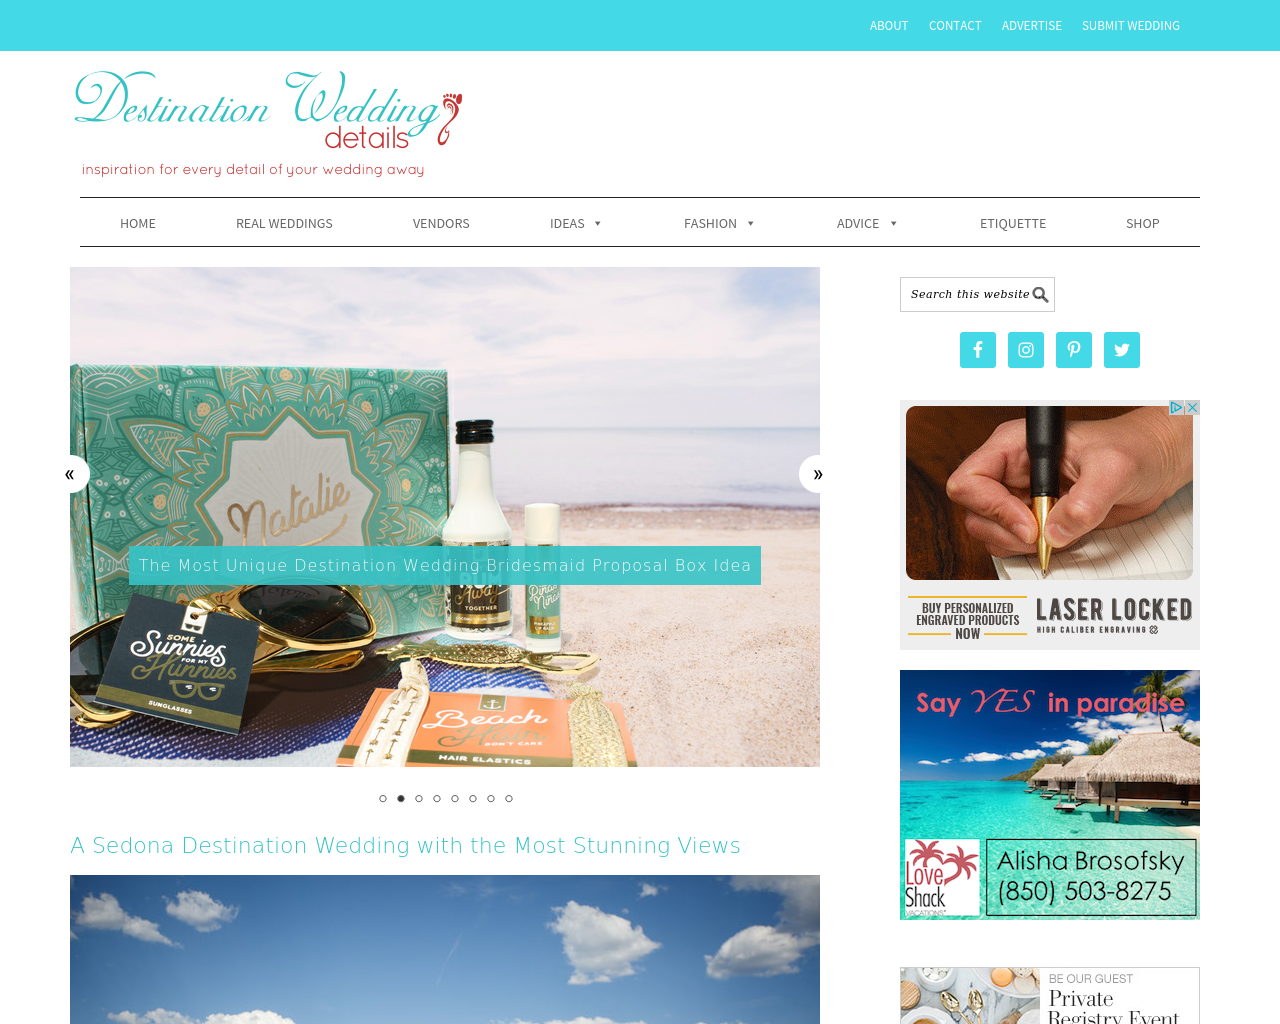 Destination-Wedding-Details-Advertising-Reviews-Pricing